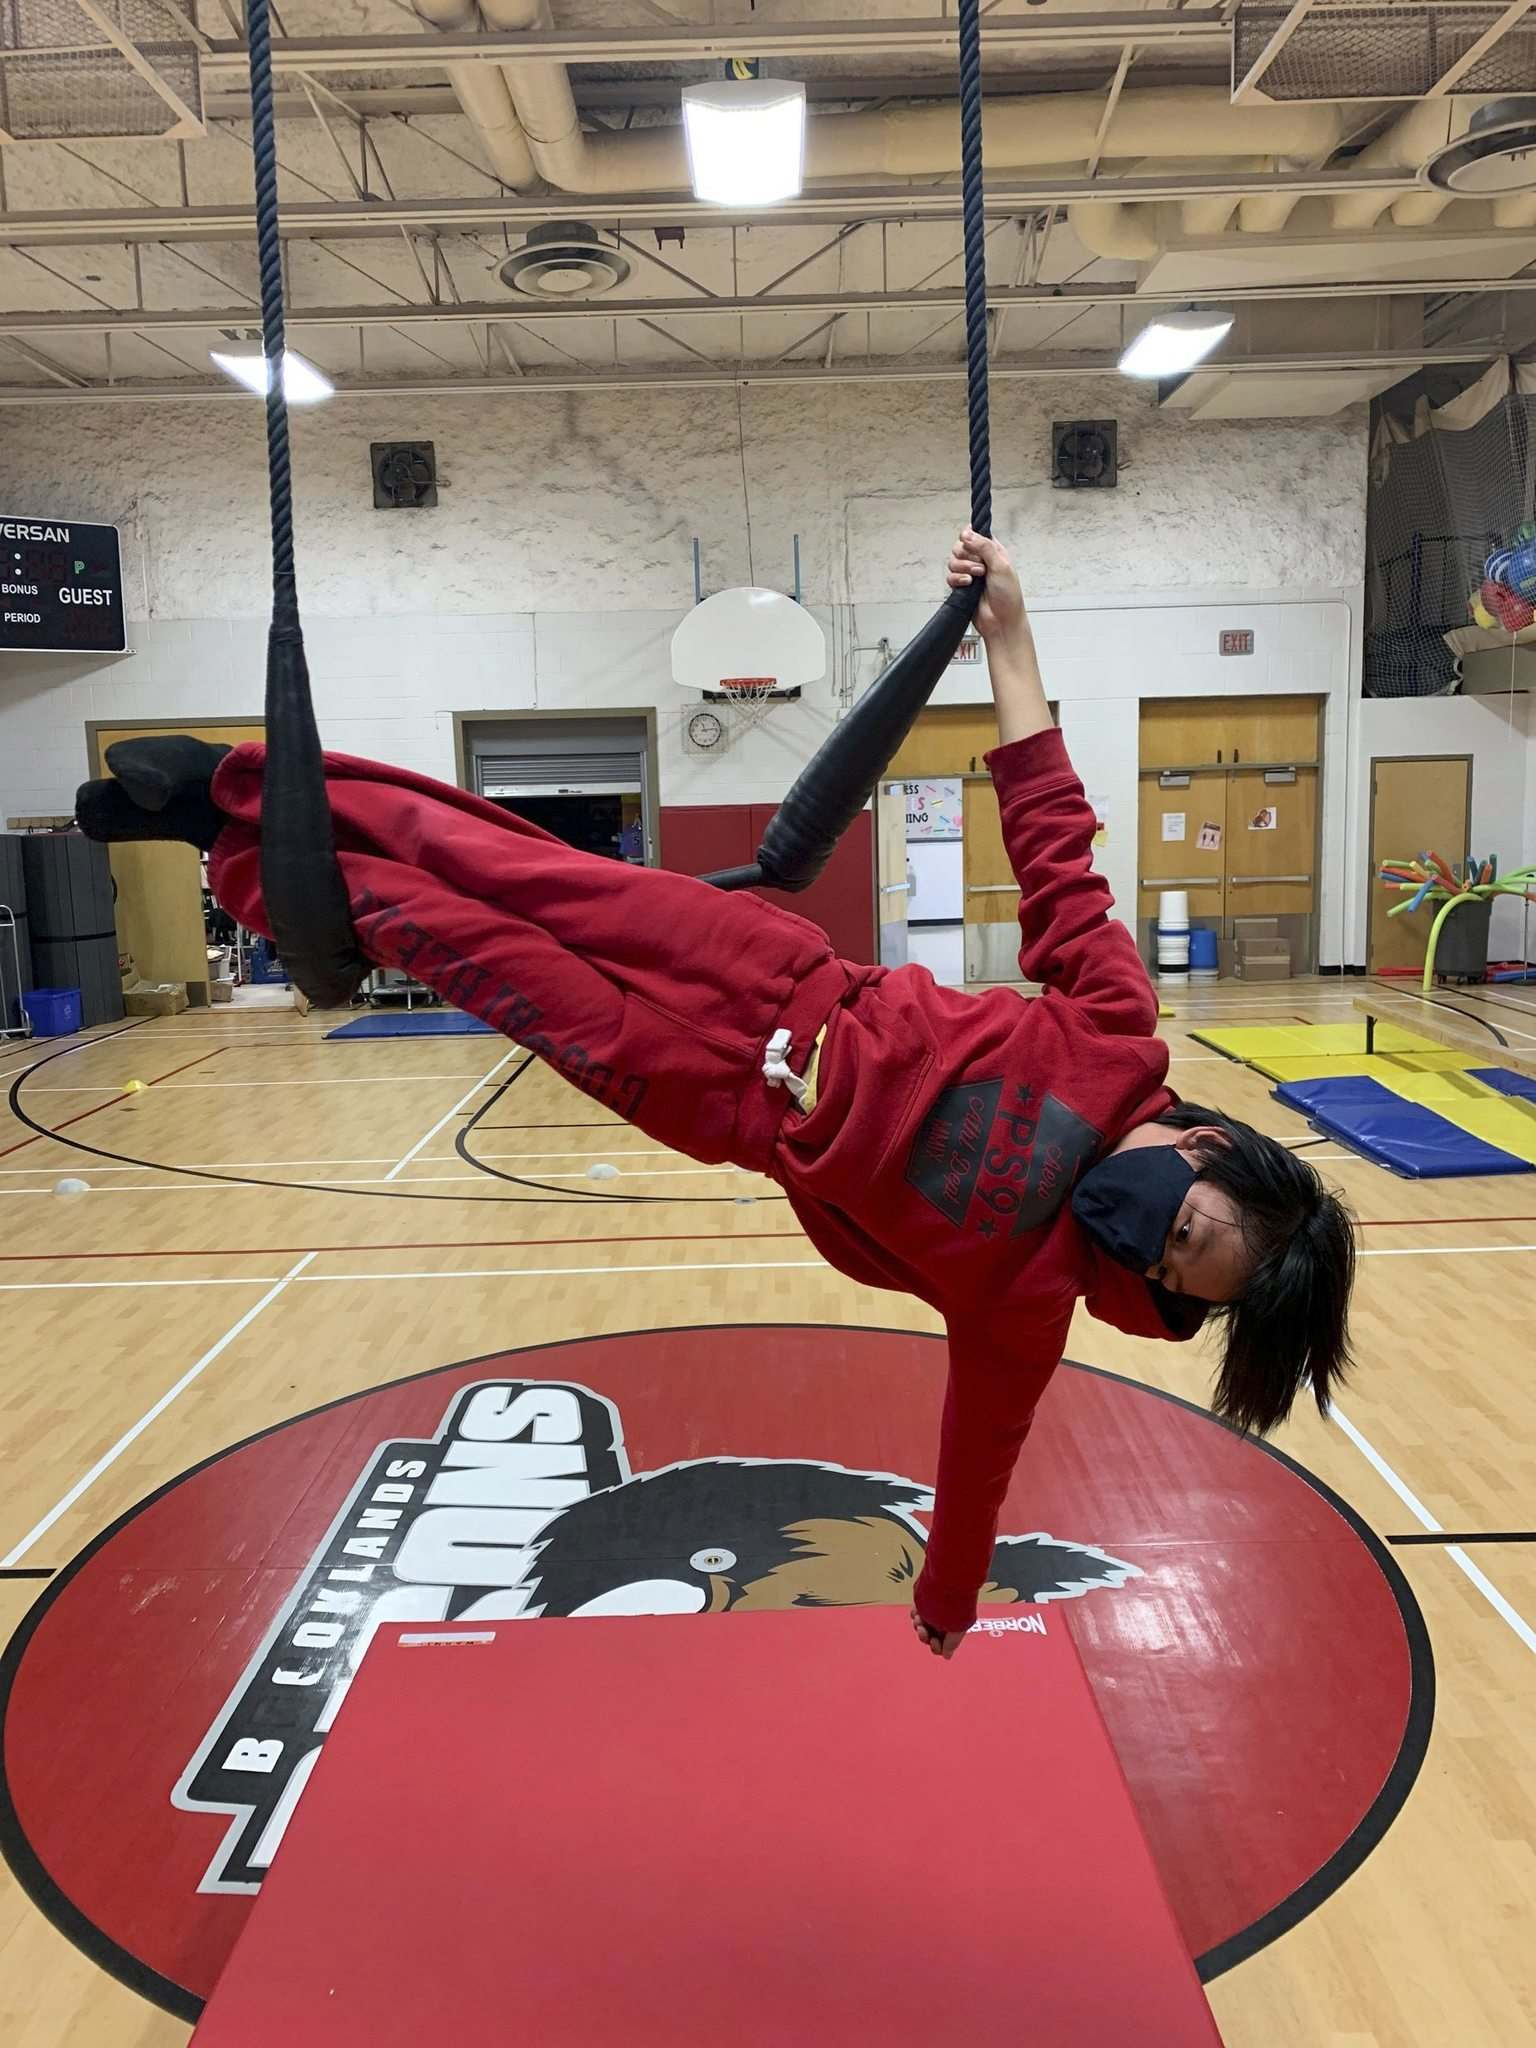 Students at schools that started incorporating certified circus instruction into phys-ed show higher competency in overall movement skills along with improved creativity, resiliency, and self-esteem levels. (Supplied)